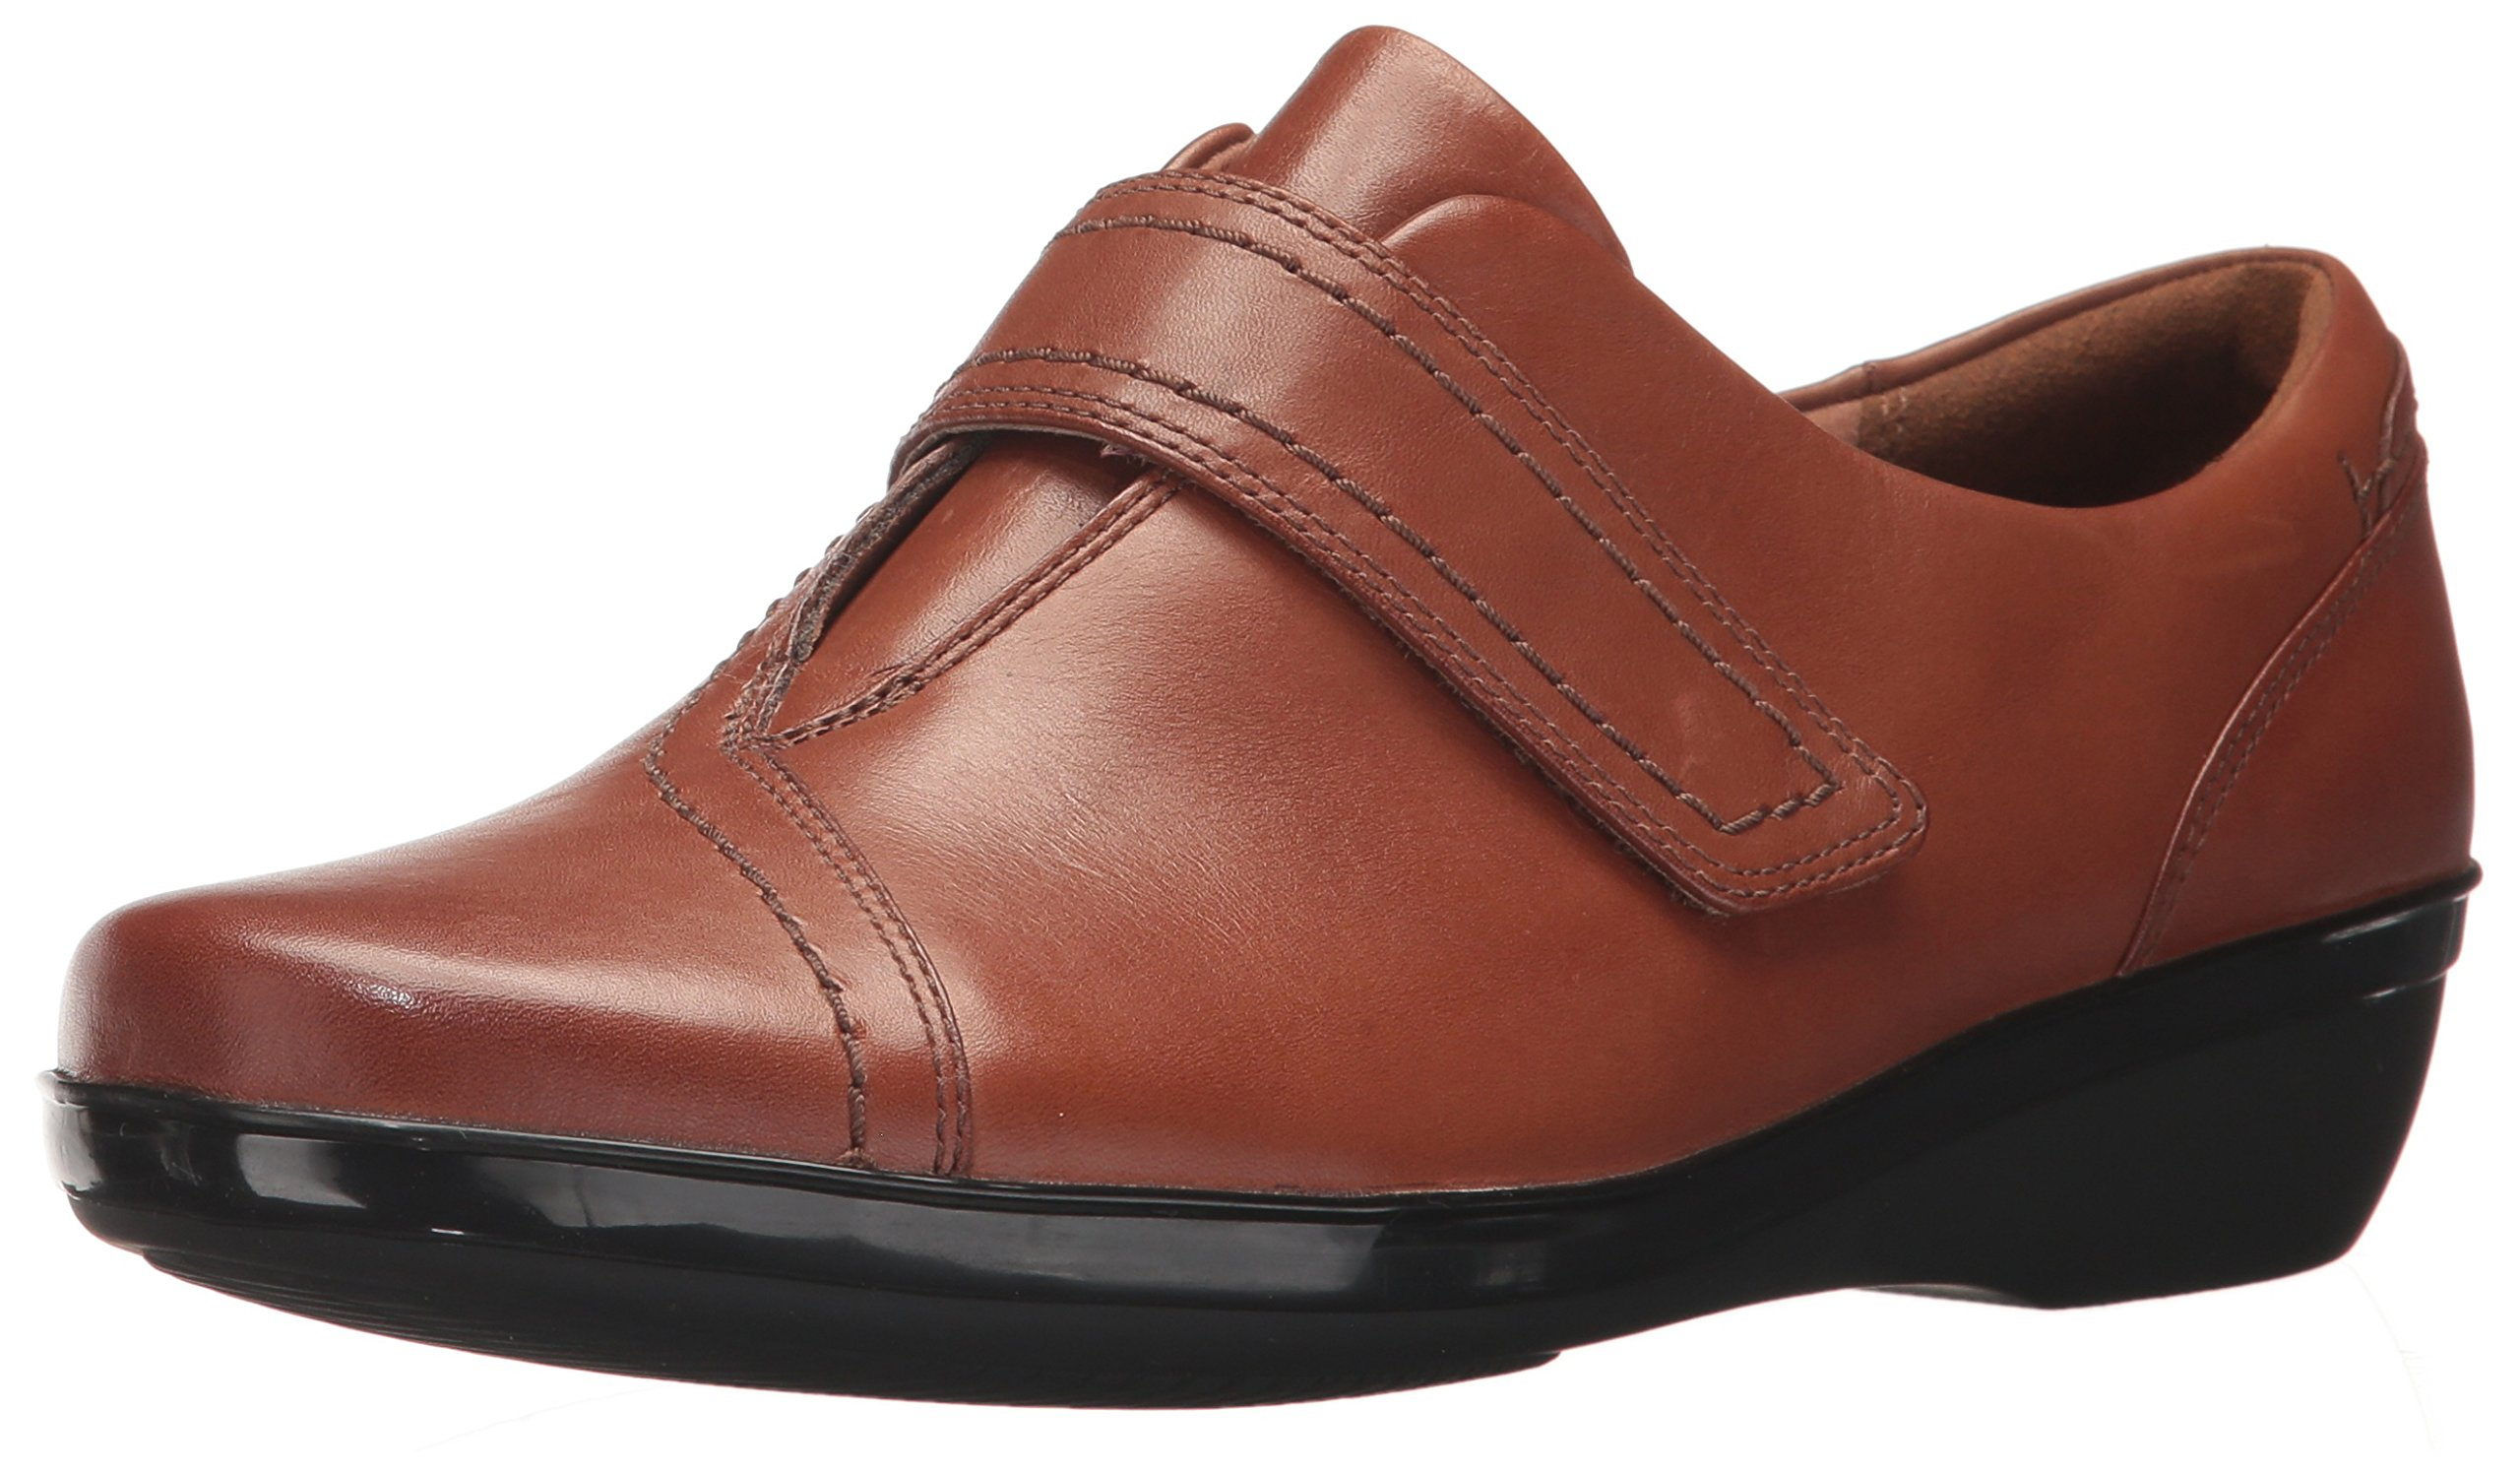 CLARKS Women's Everlay Dixey Slip-on Loafer, Brown, 6 M US